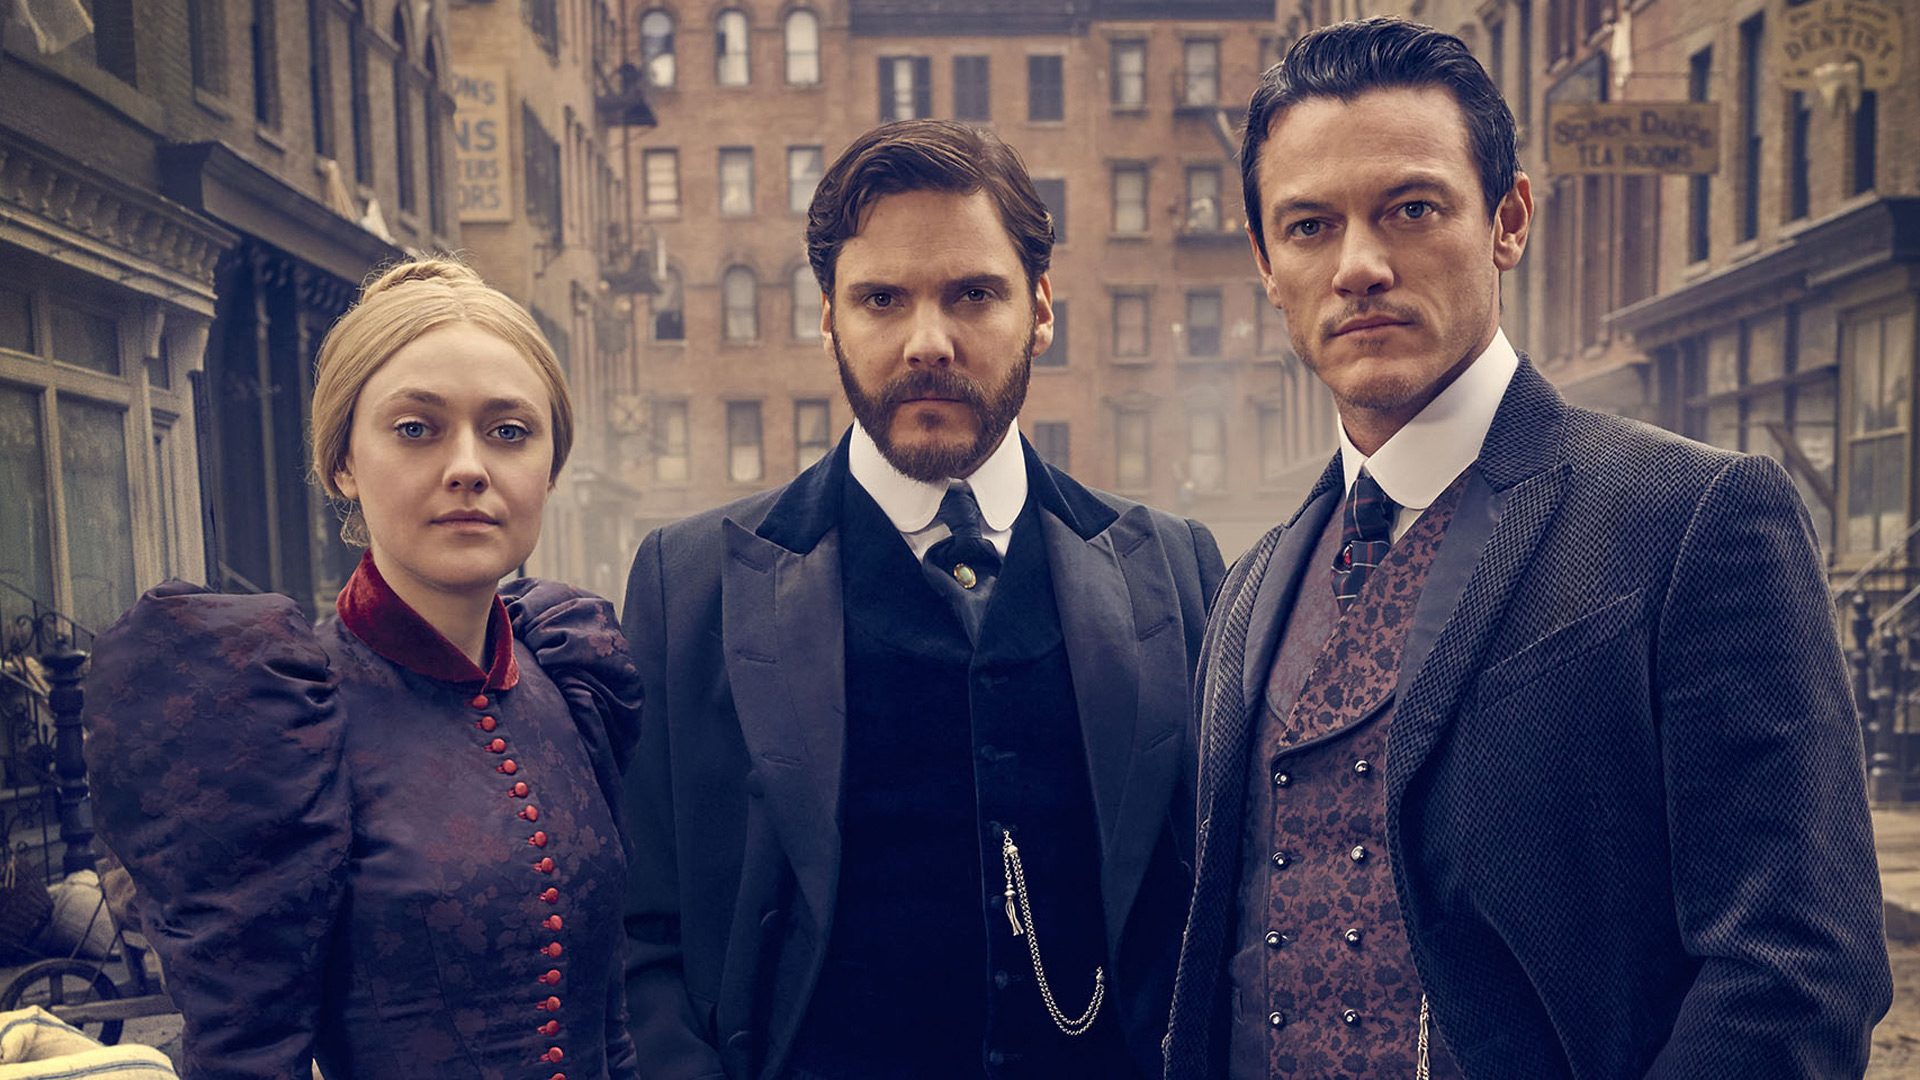 The Alienist: Angel of Darkness has a release date!